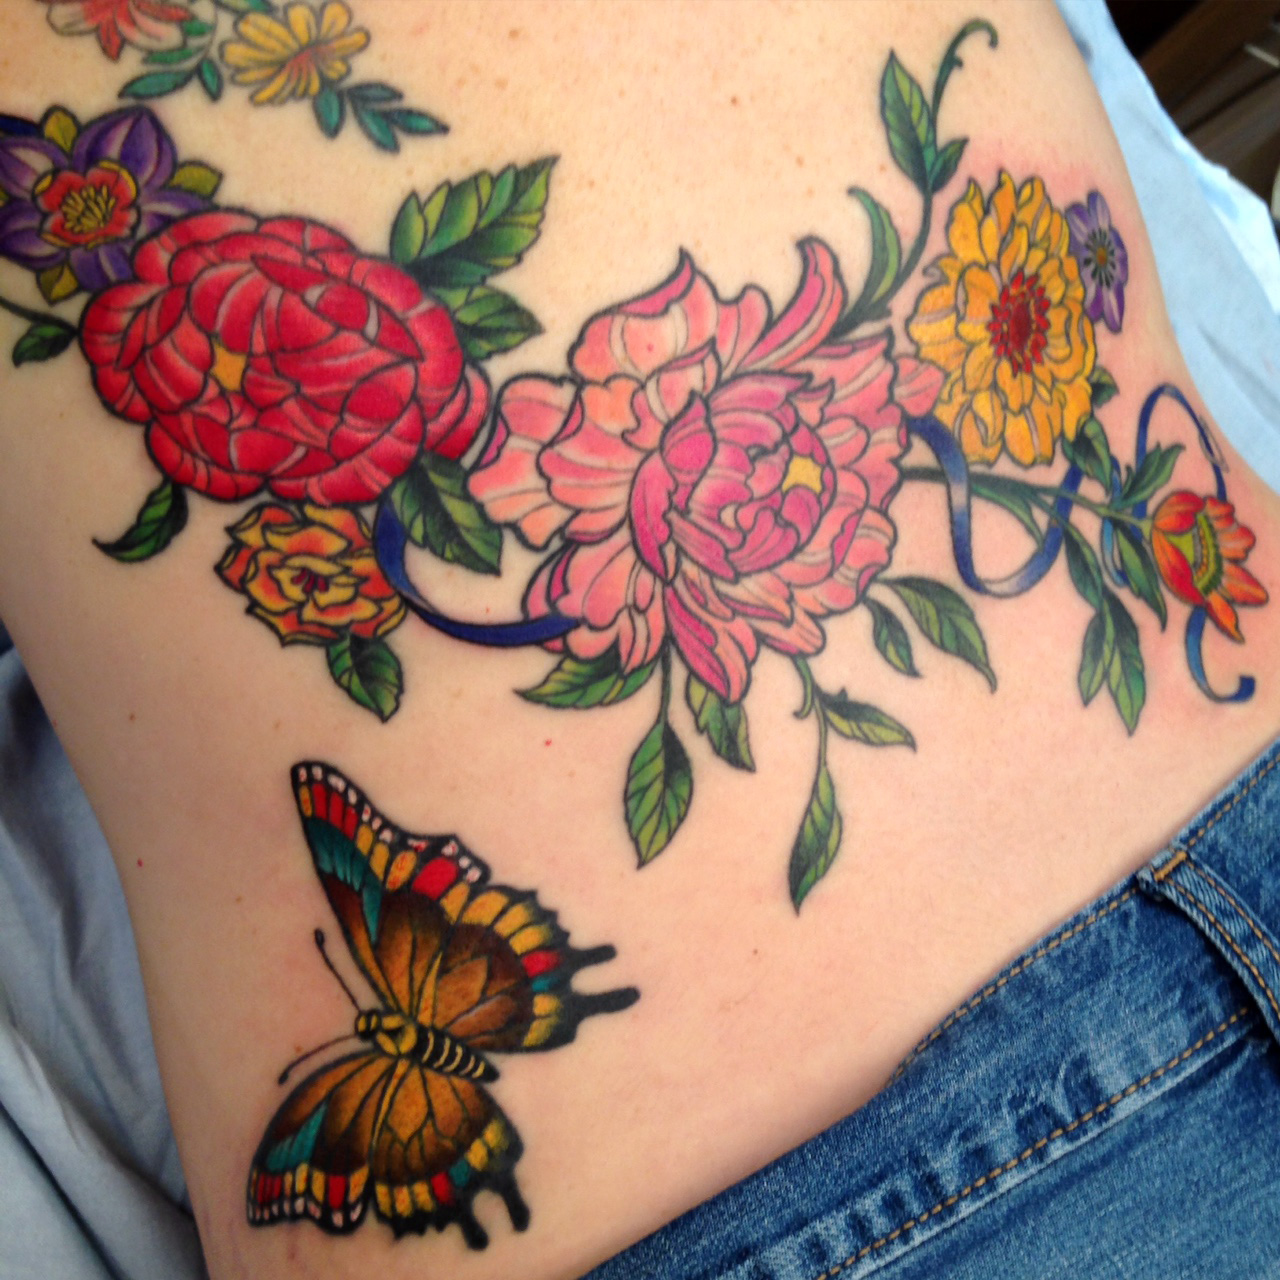 kim-saigh-color-flowers-back-2016.JPG